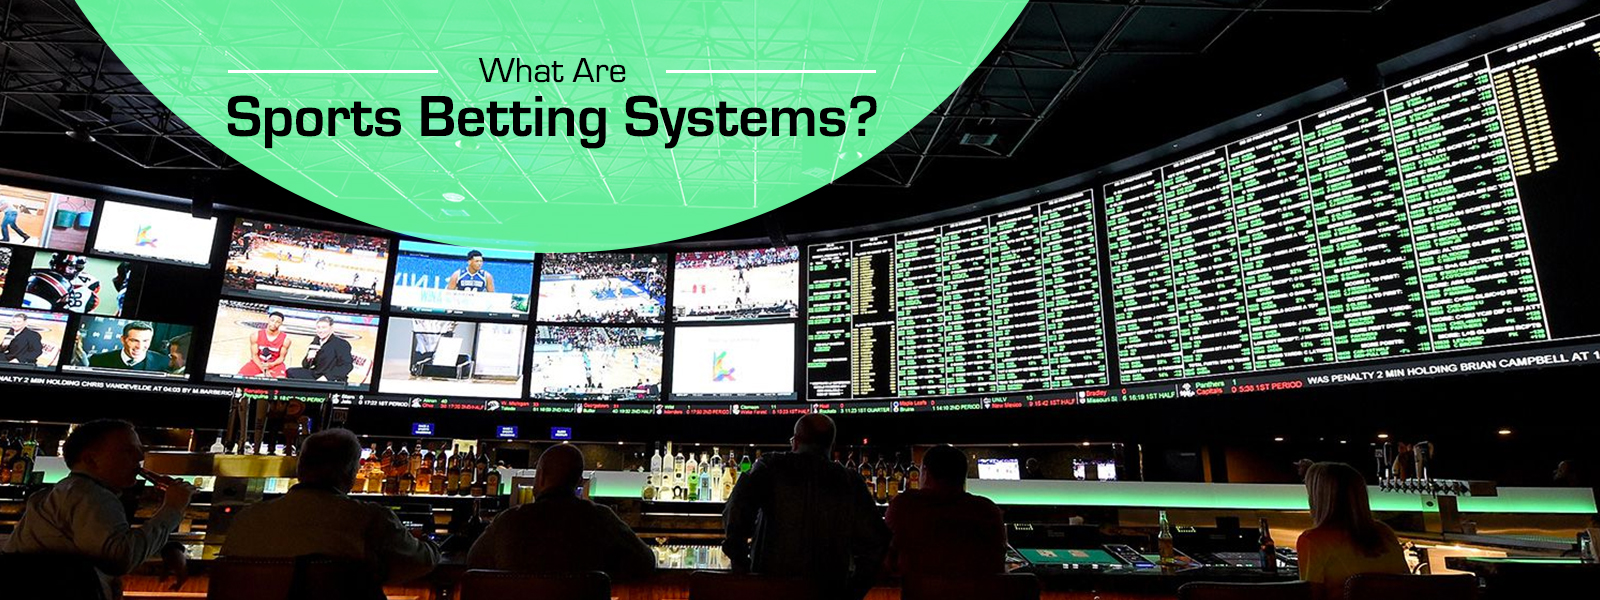 What Are Sports Betting Systems?